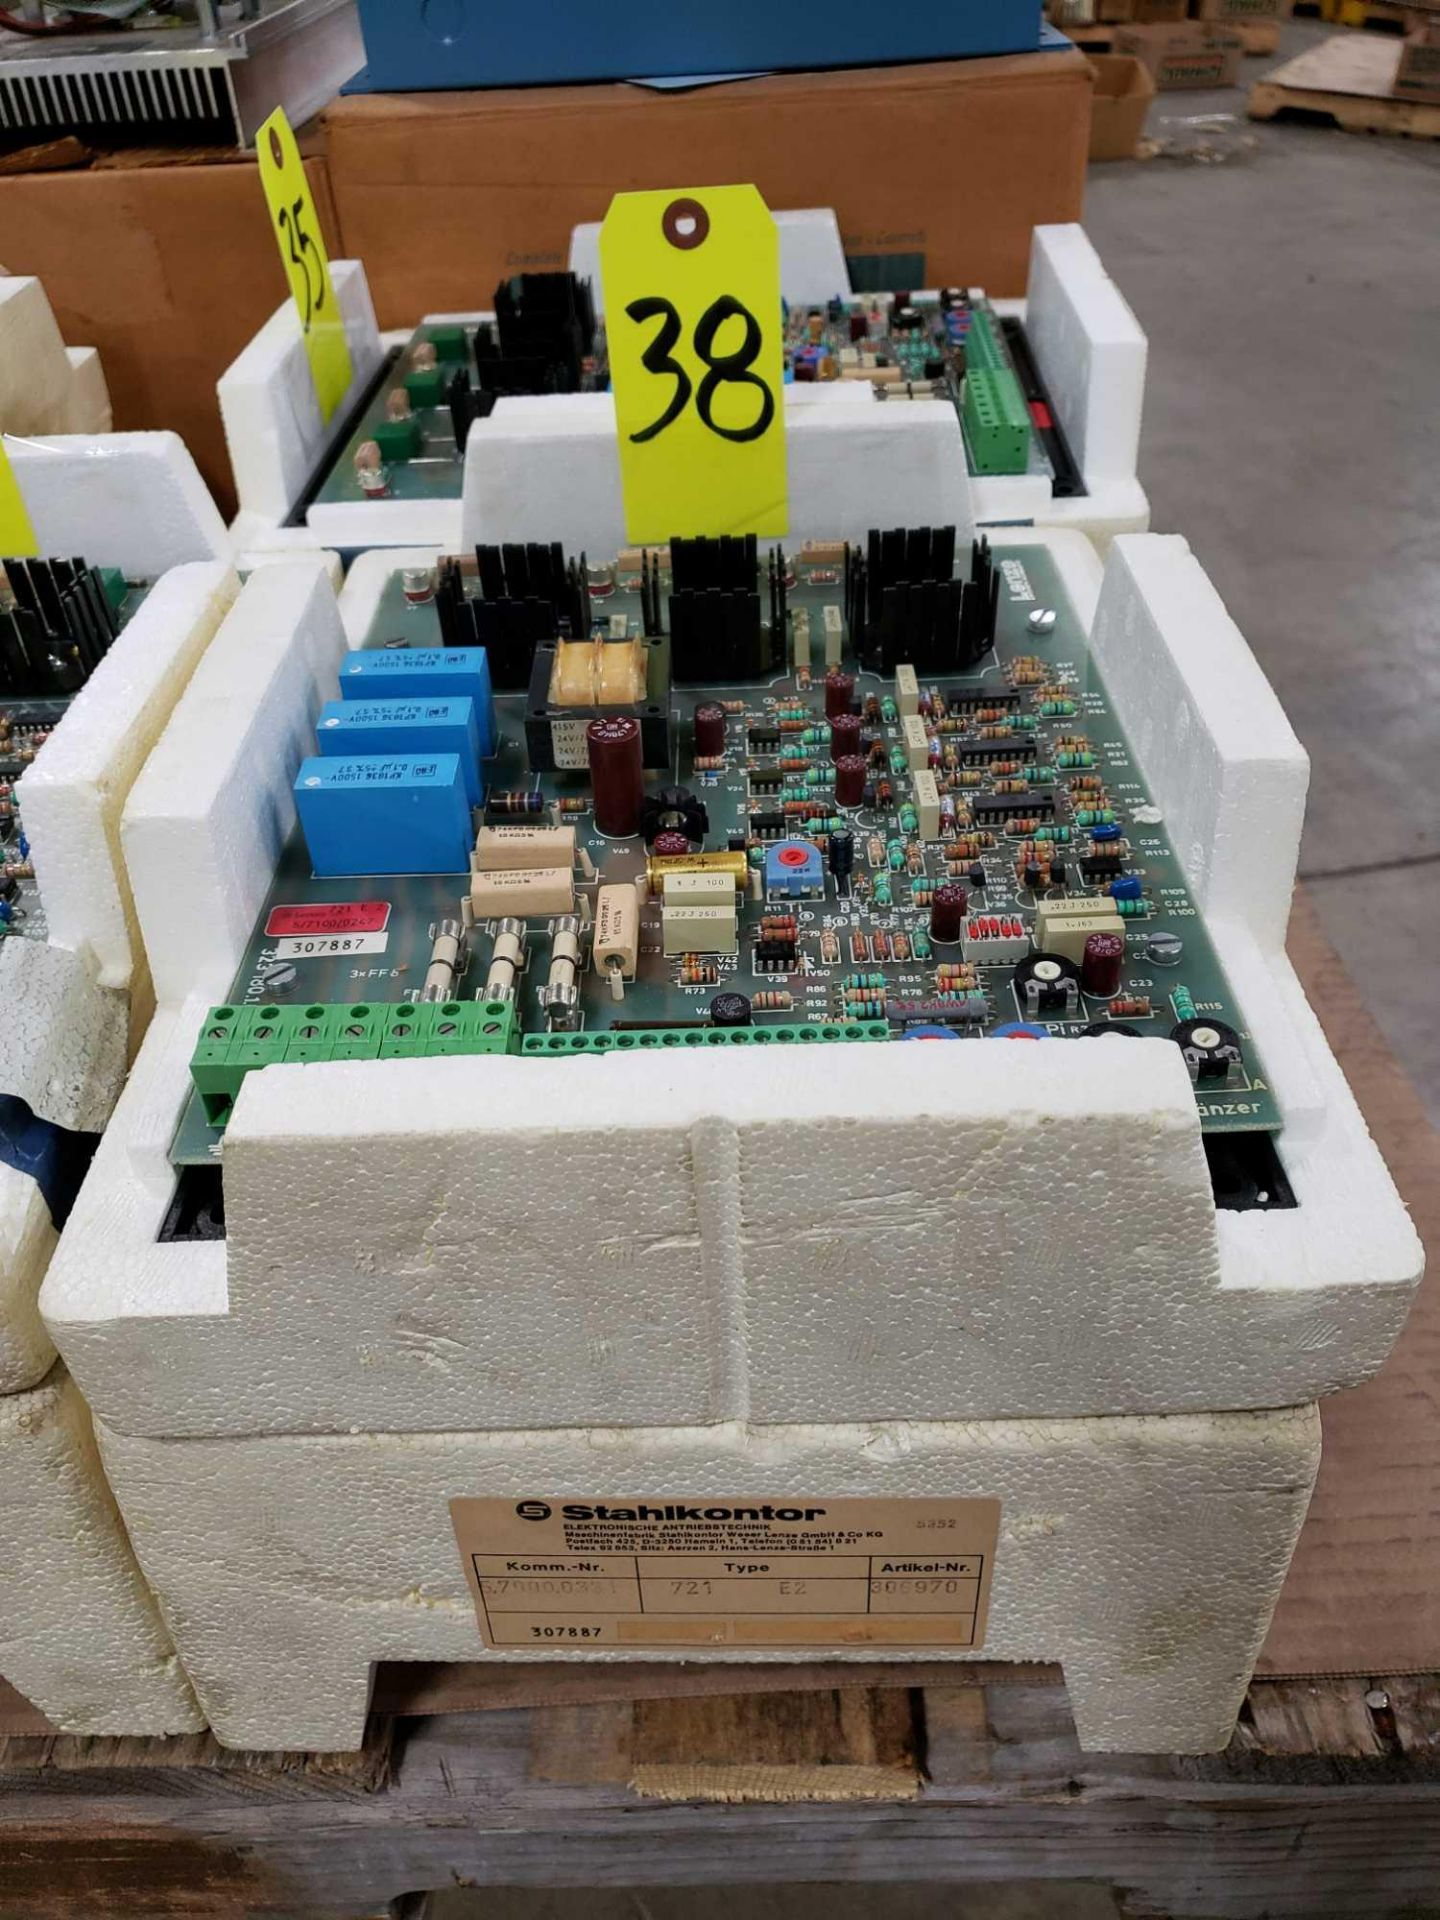 Lot 38 - Stahlkontor control model 721-E2. New as pictured.